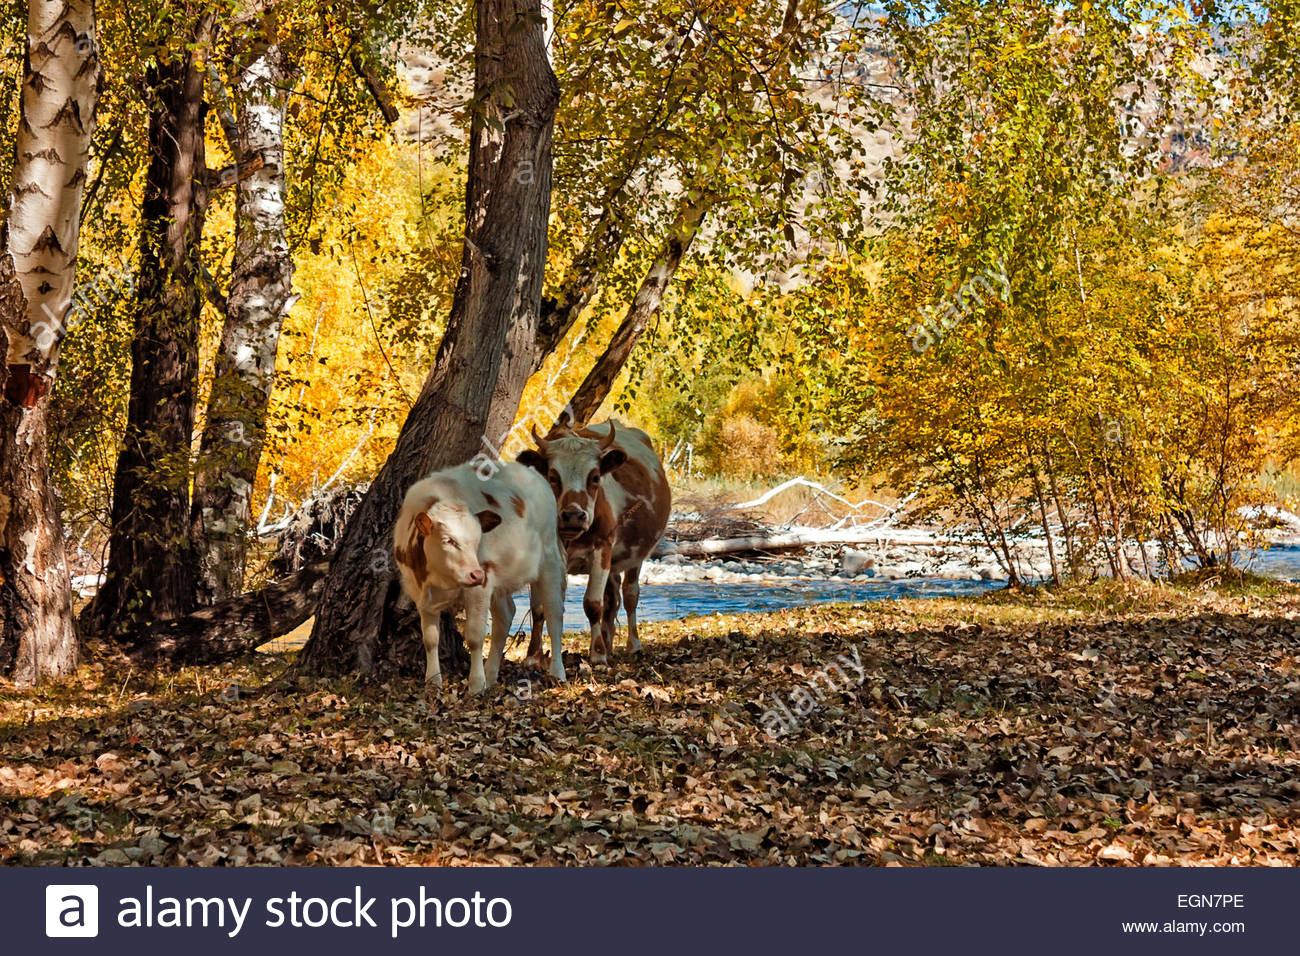 Cows with calf in the autumn forest, birches - Stock Image